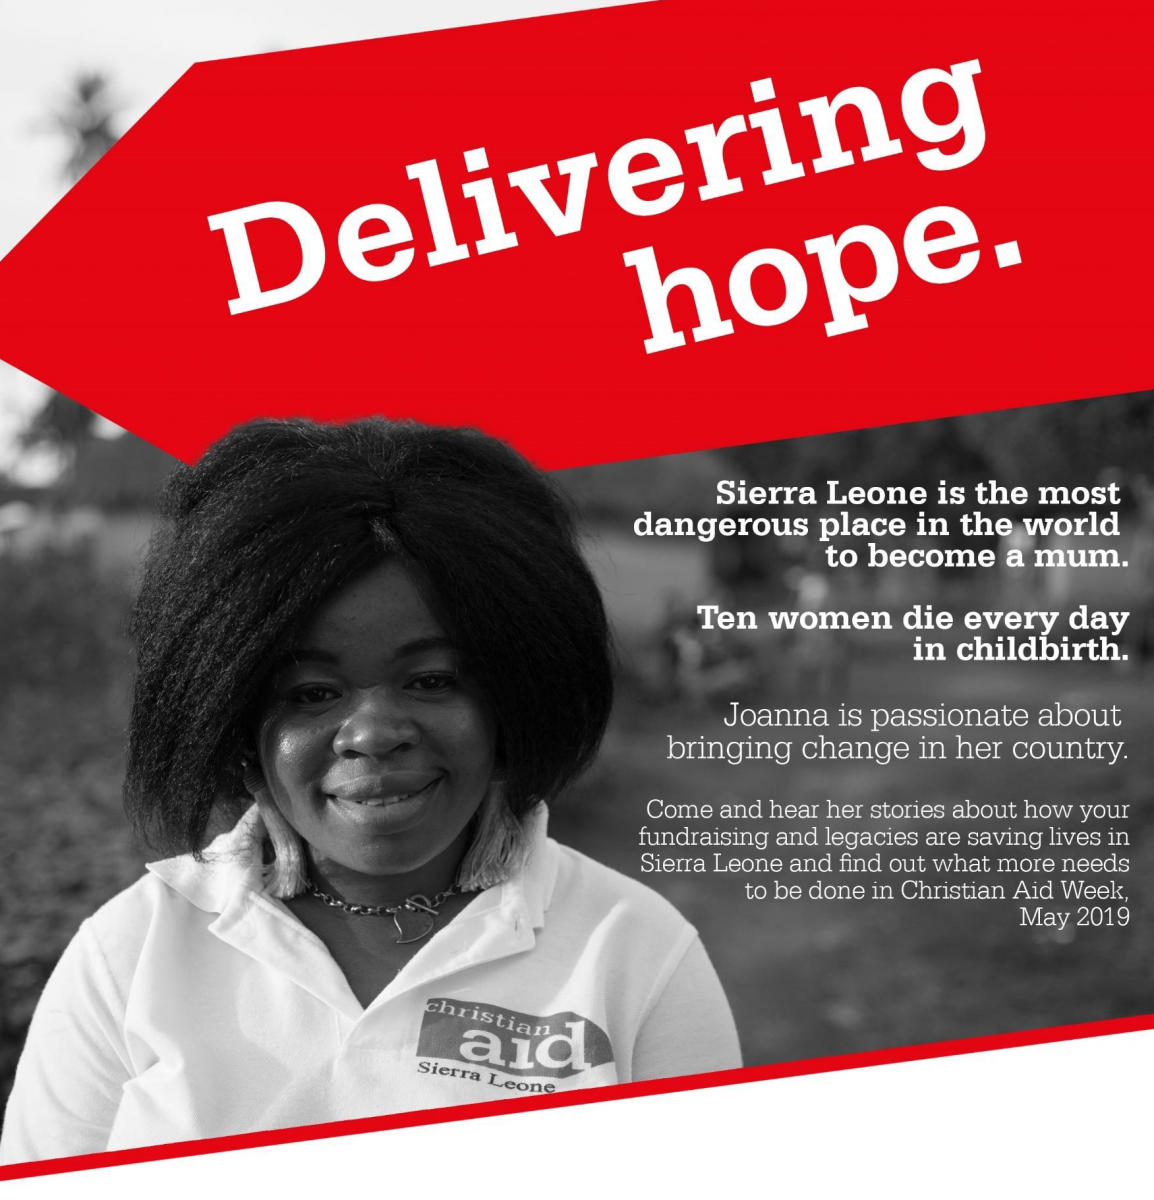 Christian Aid Visitor Tour from Sierra Leone